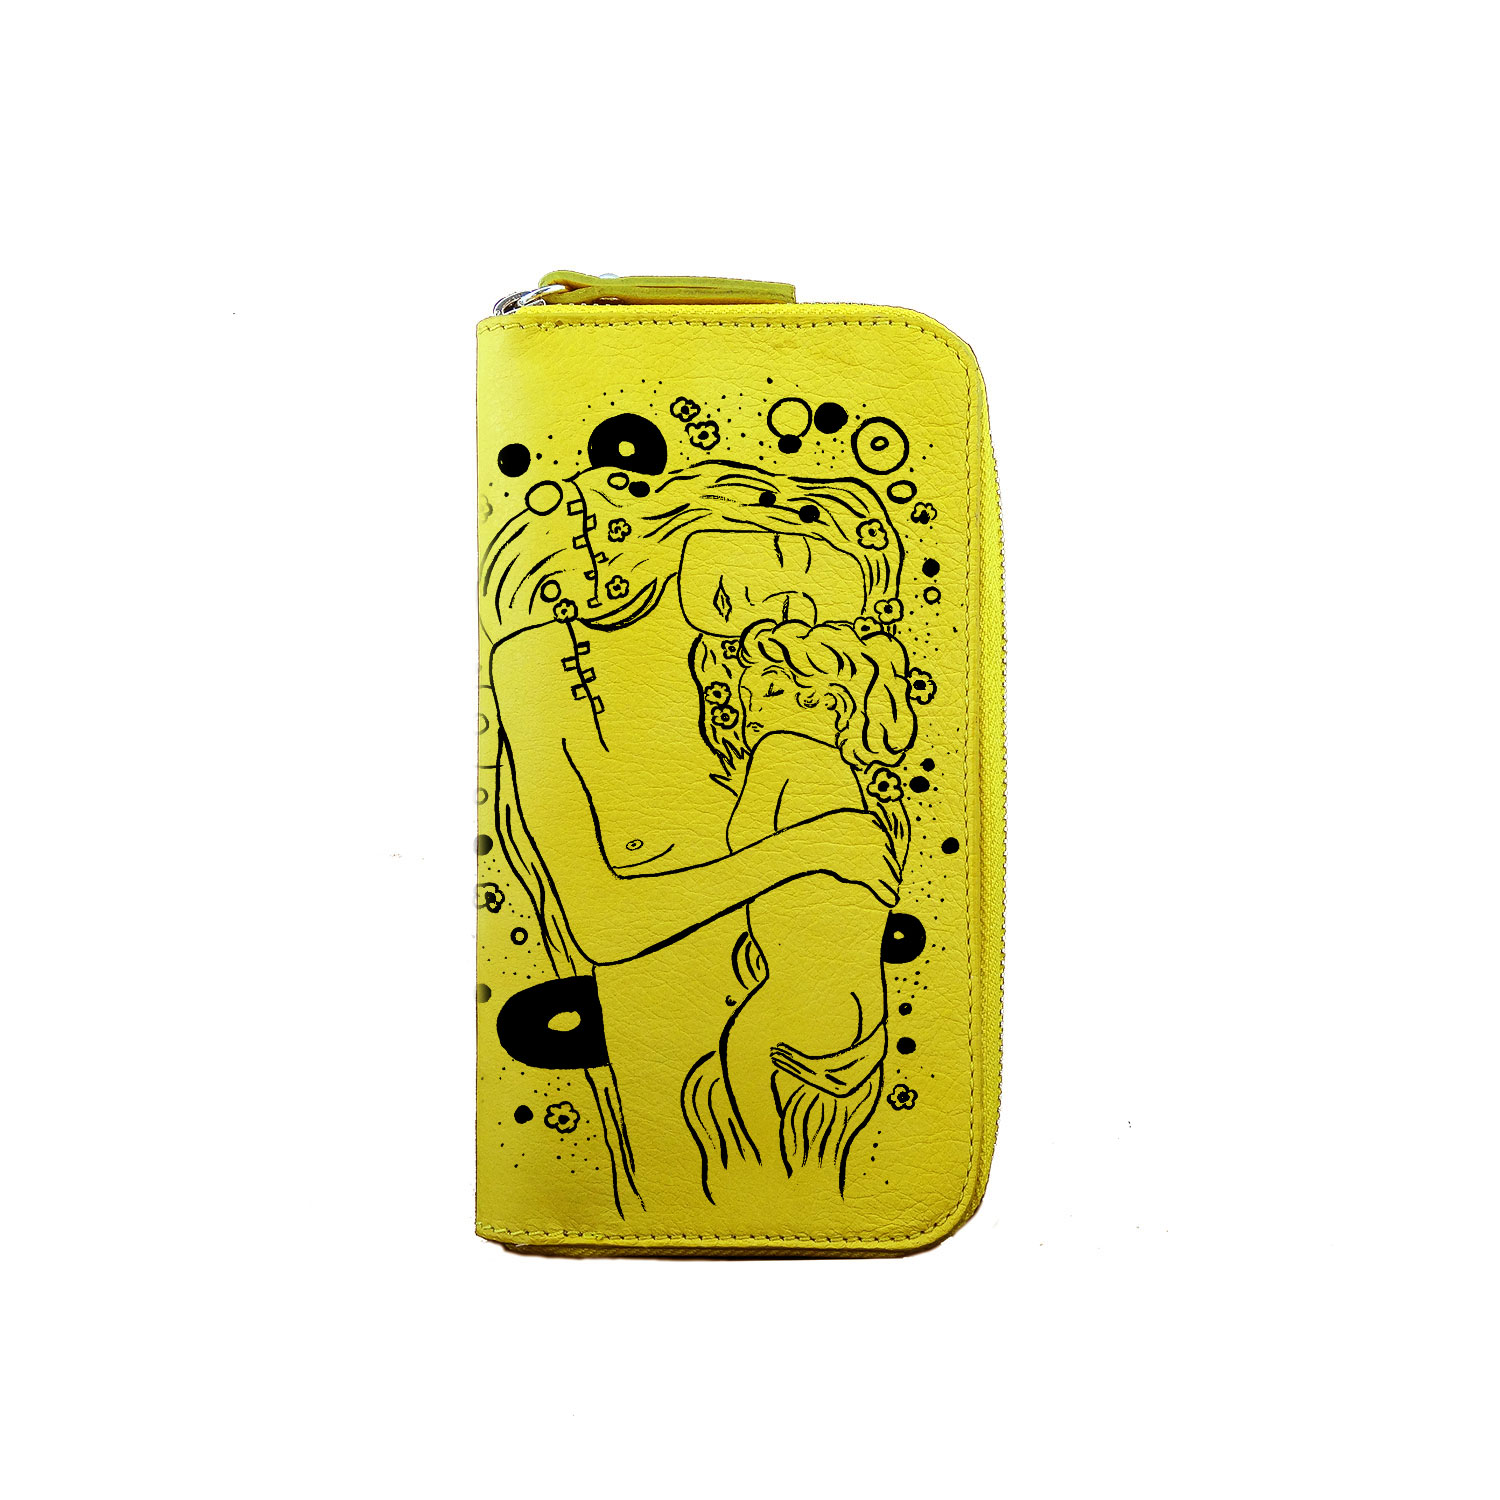 Hand painted wallet - Mother and child black and white by Klimt